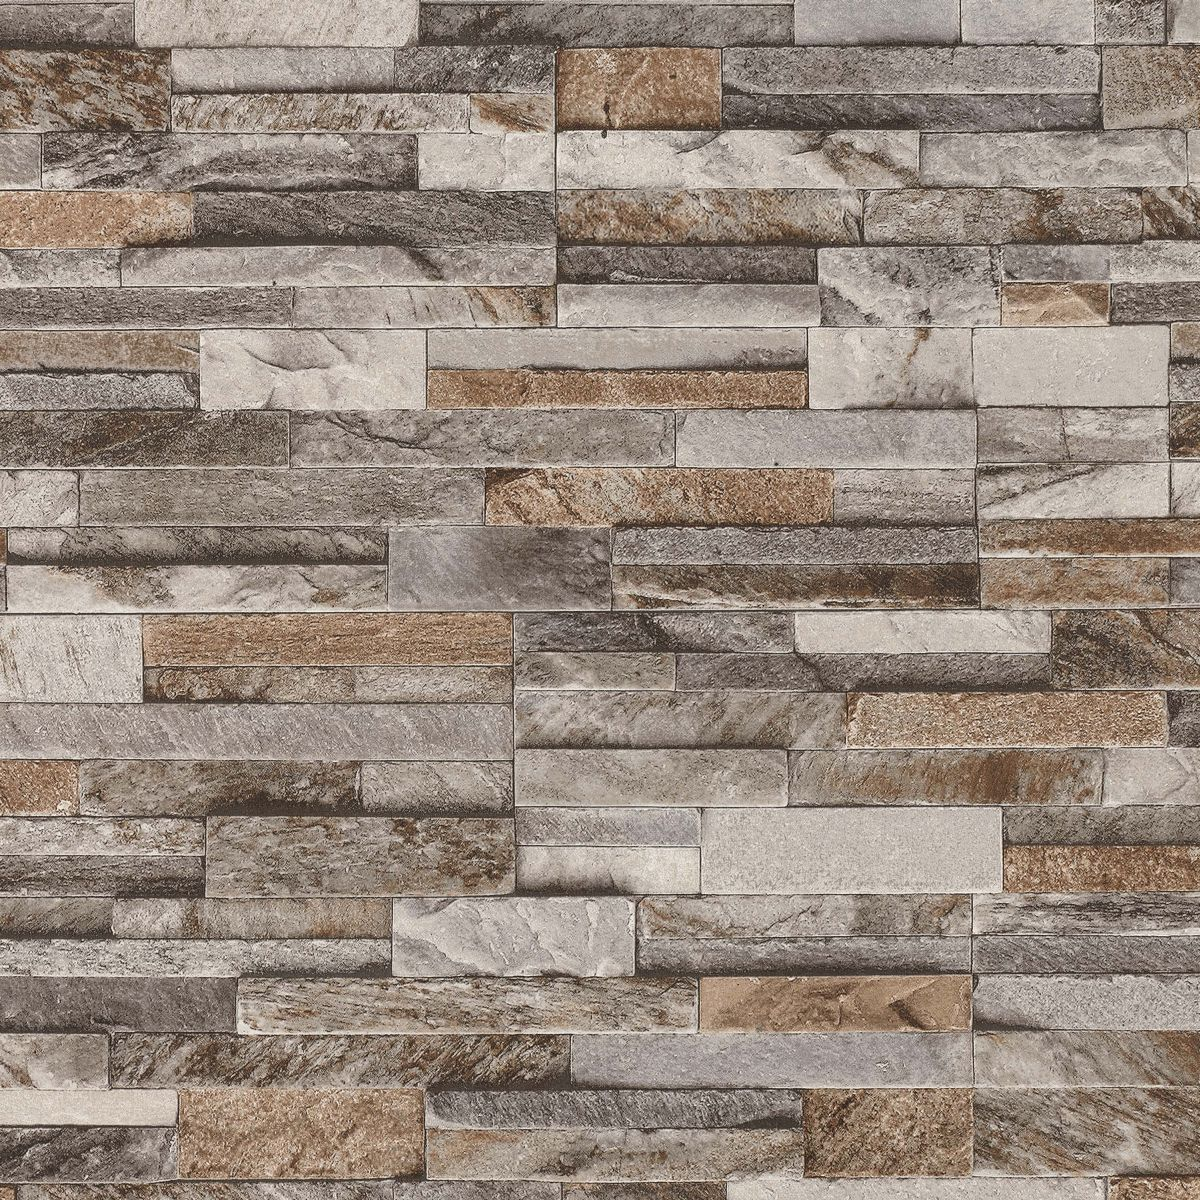 brick effect wallpaper 3d slate stone wall textured vinyl brown grey beige ebay. Black Bedroom Furniture Sets. Home Design Ideas